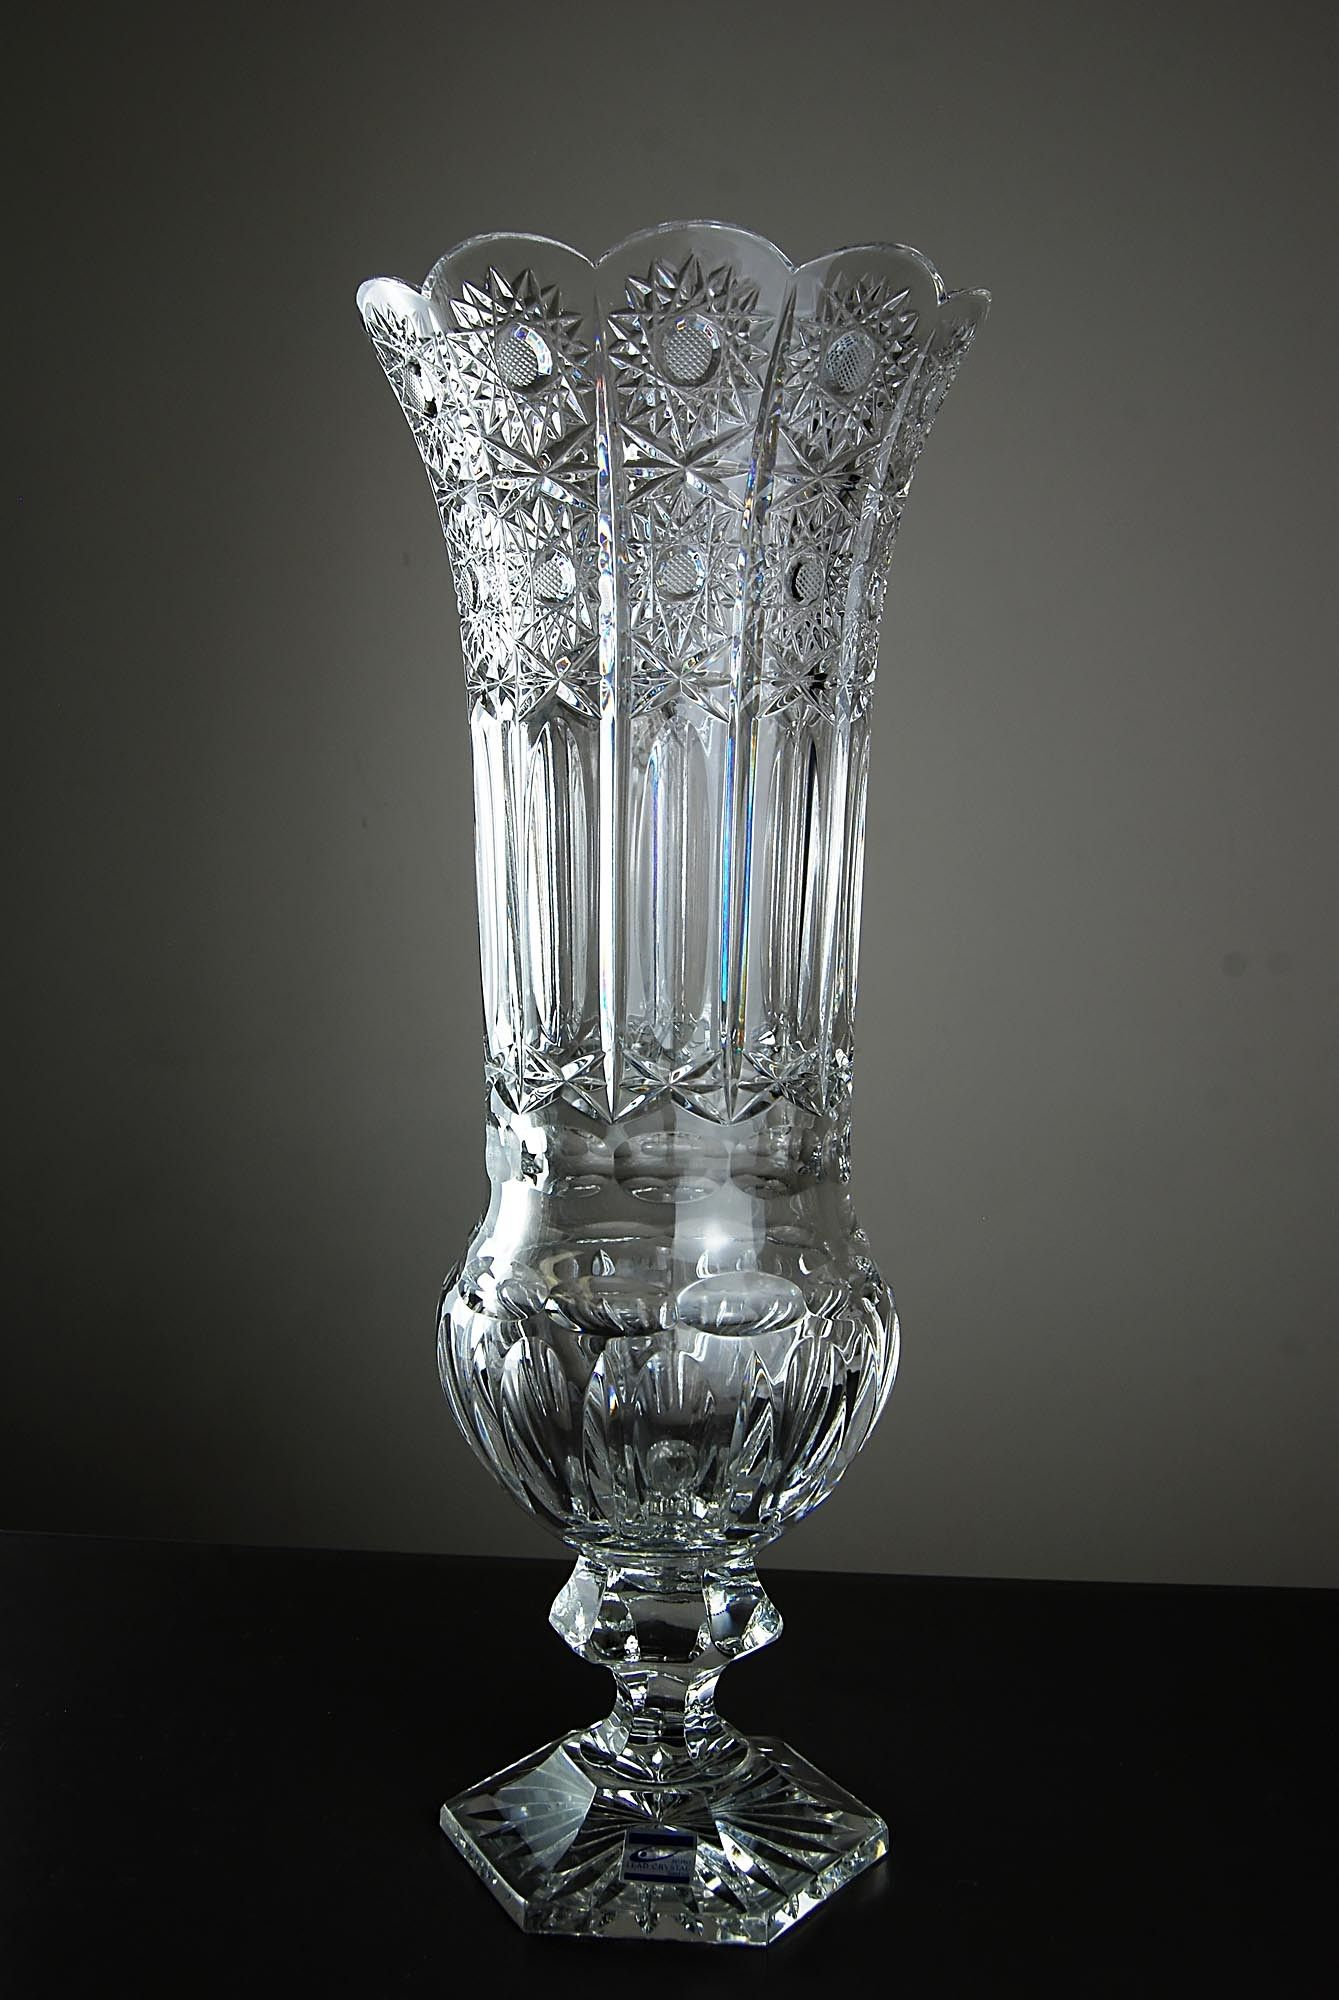 German cut glass vase by olbernhauer vases crystal glass german cut glass vase by olbernhauer vases crystal glass reviewsmspy